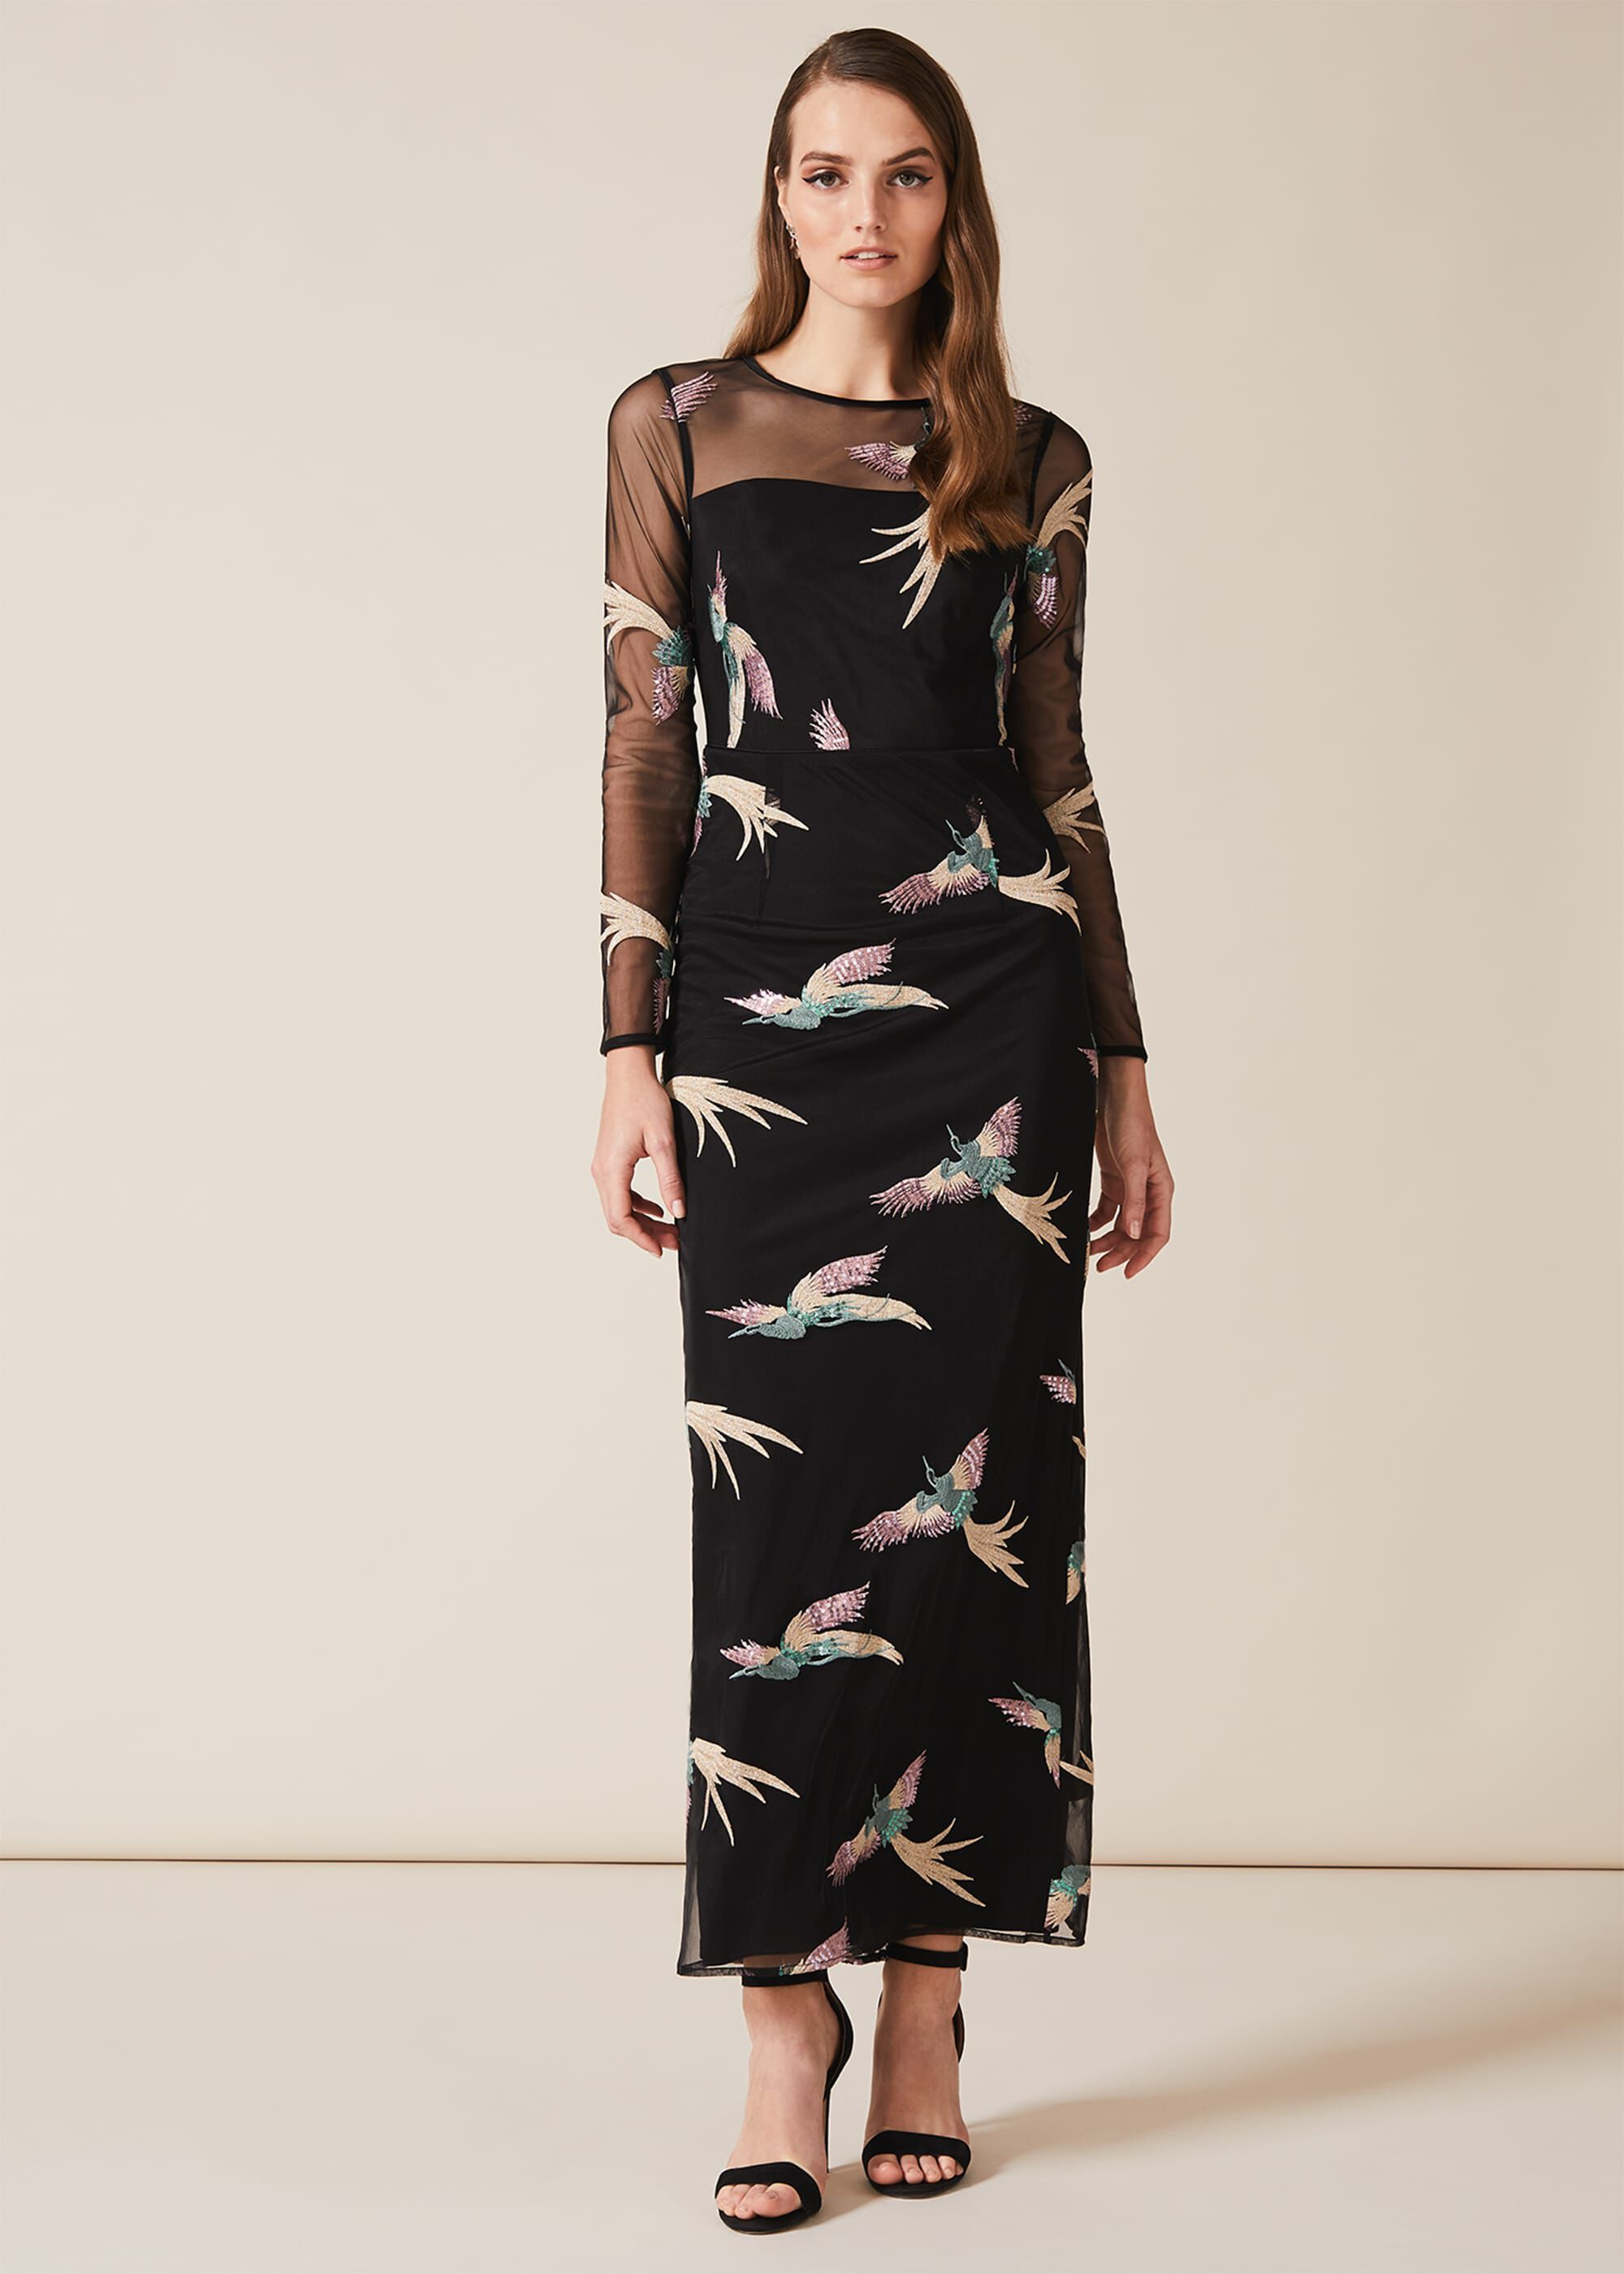 Phase Eight Astrid Embroidered Bird Dress, Black, Maxi, Occasion Dress